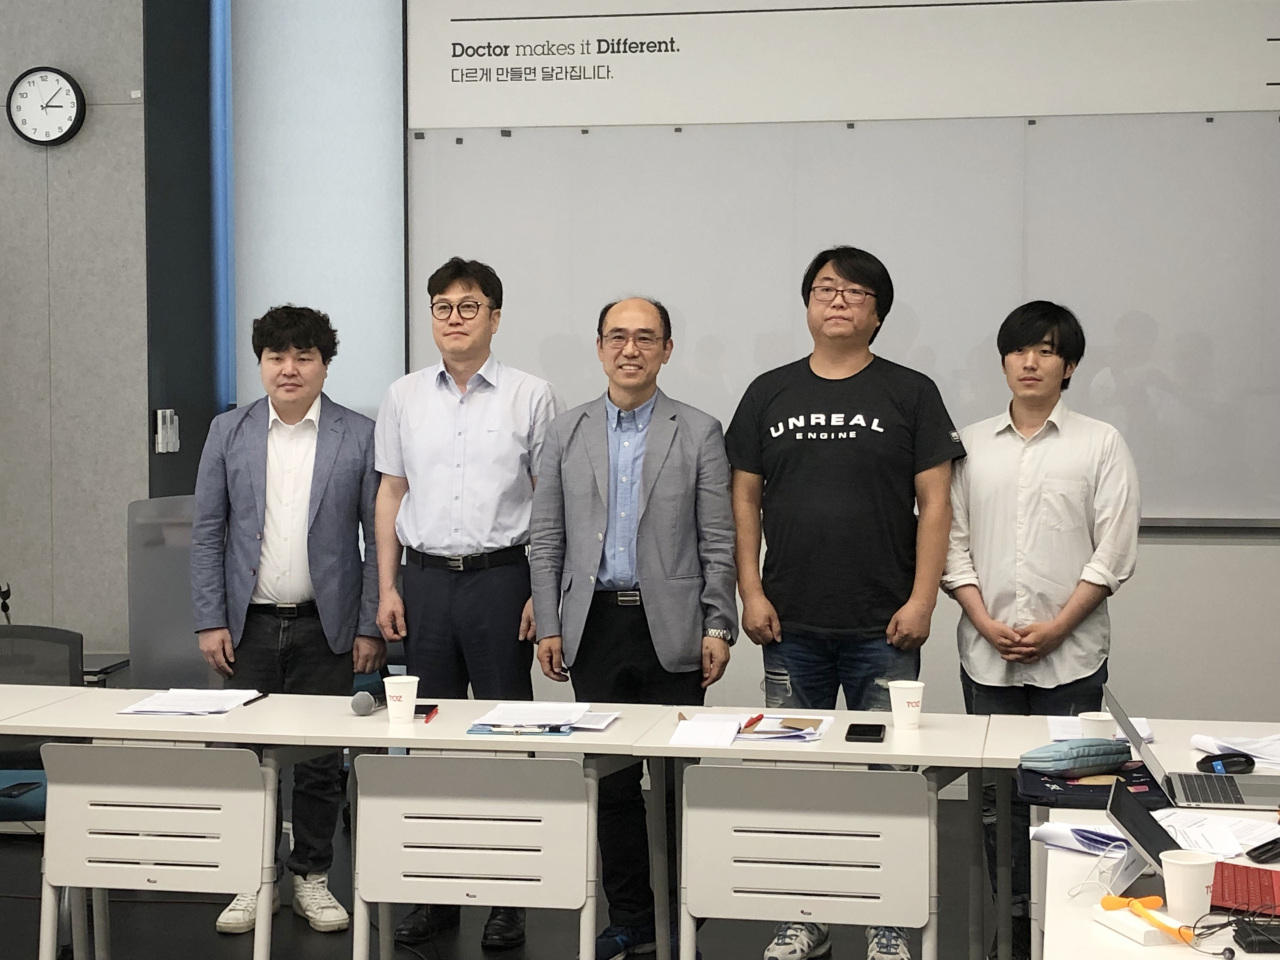 From left are Shim Jae-youn, research project director of Korea Academic Society of Games, Ha Yang-soo, director of Korea Internet PC Culture Association, Wi Jong-hyun, chairman of the committee against the domestic adoption of ICD-11, Kim Hyun-gyu, executive vice chairman of Korea Mobile Game Association and Hwang Hee-doo, chairman of Youth Culture Forum (Lim Jeong-yeo/The Korea Herald)